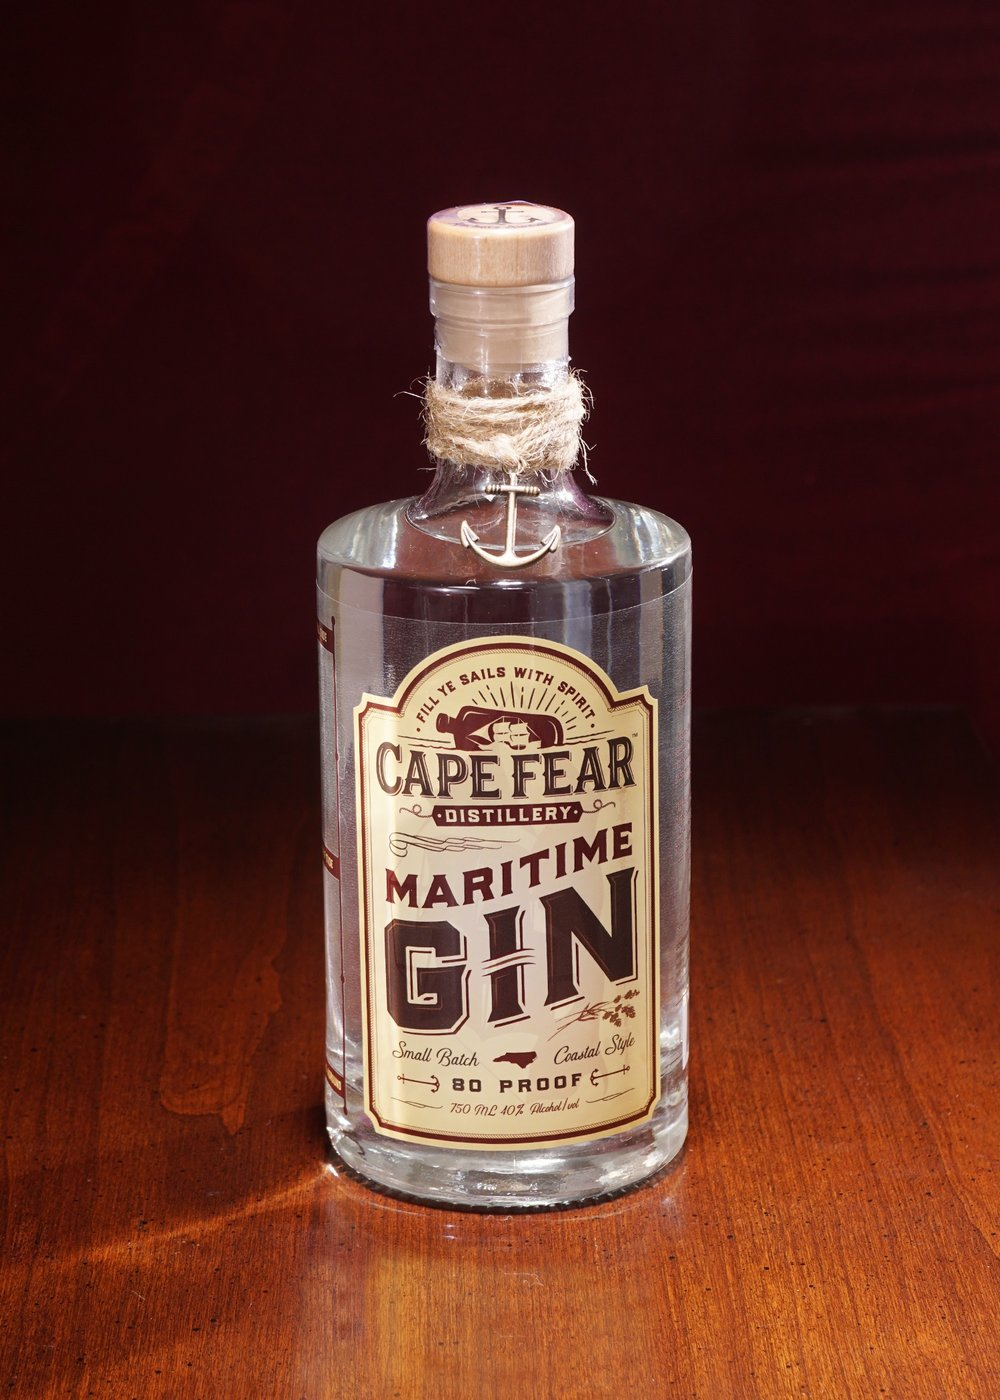 "Cape Fear Distiller's ""Maritime Gin"" is available for purchase at the distillery and will be available in ABC stores soon. Tours at Cape Fear Distillery are $5 and include a free gin tasting."